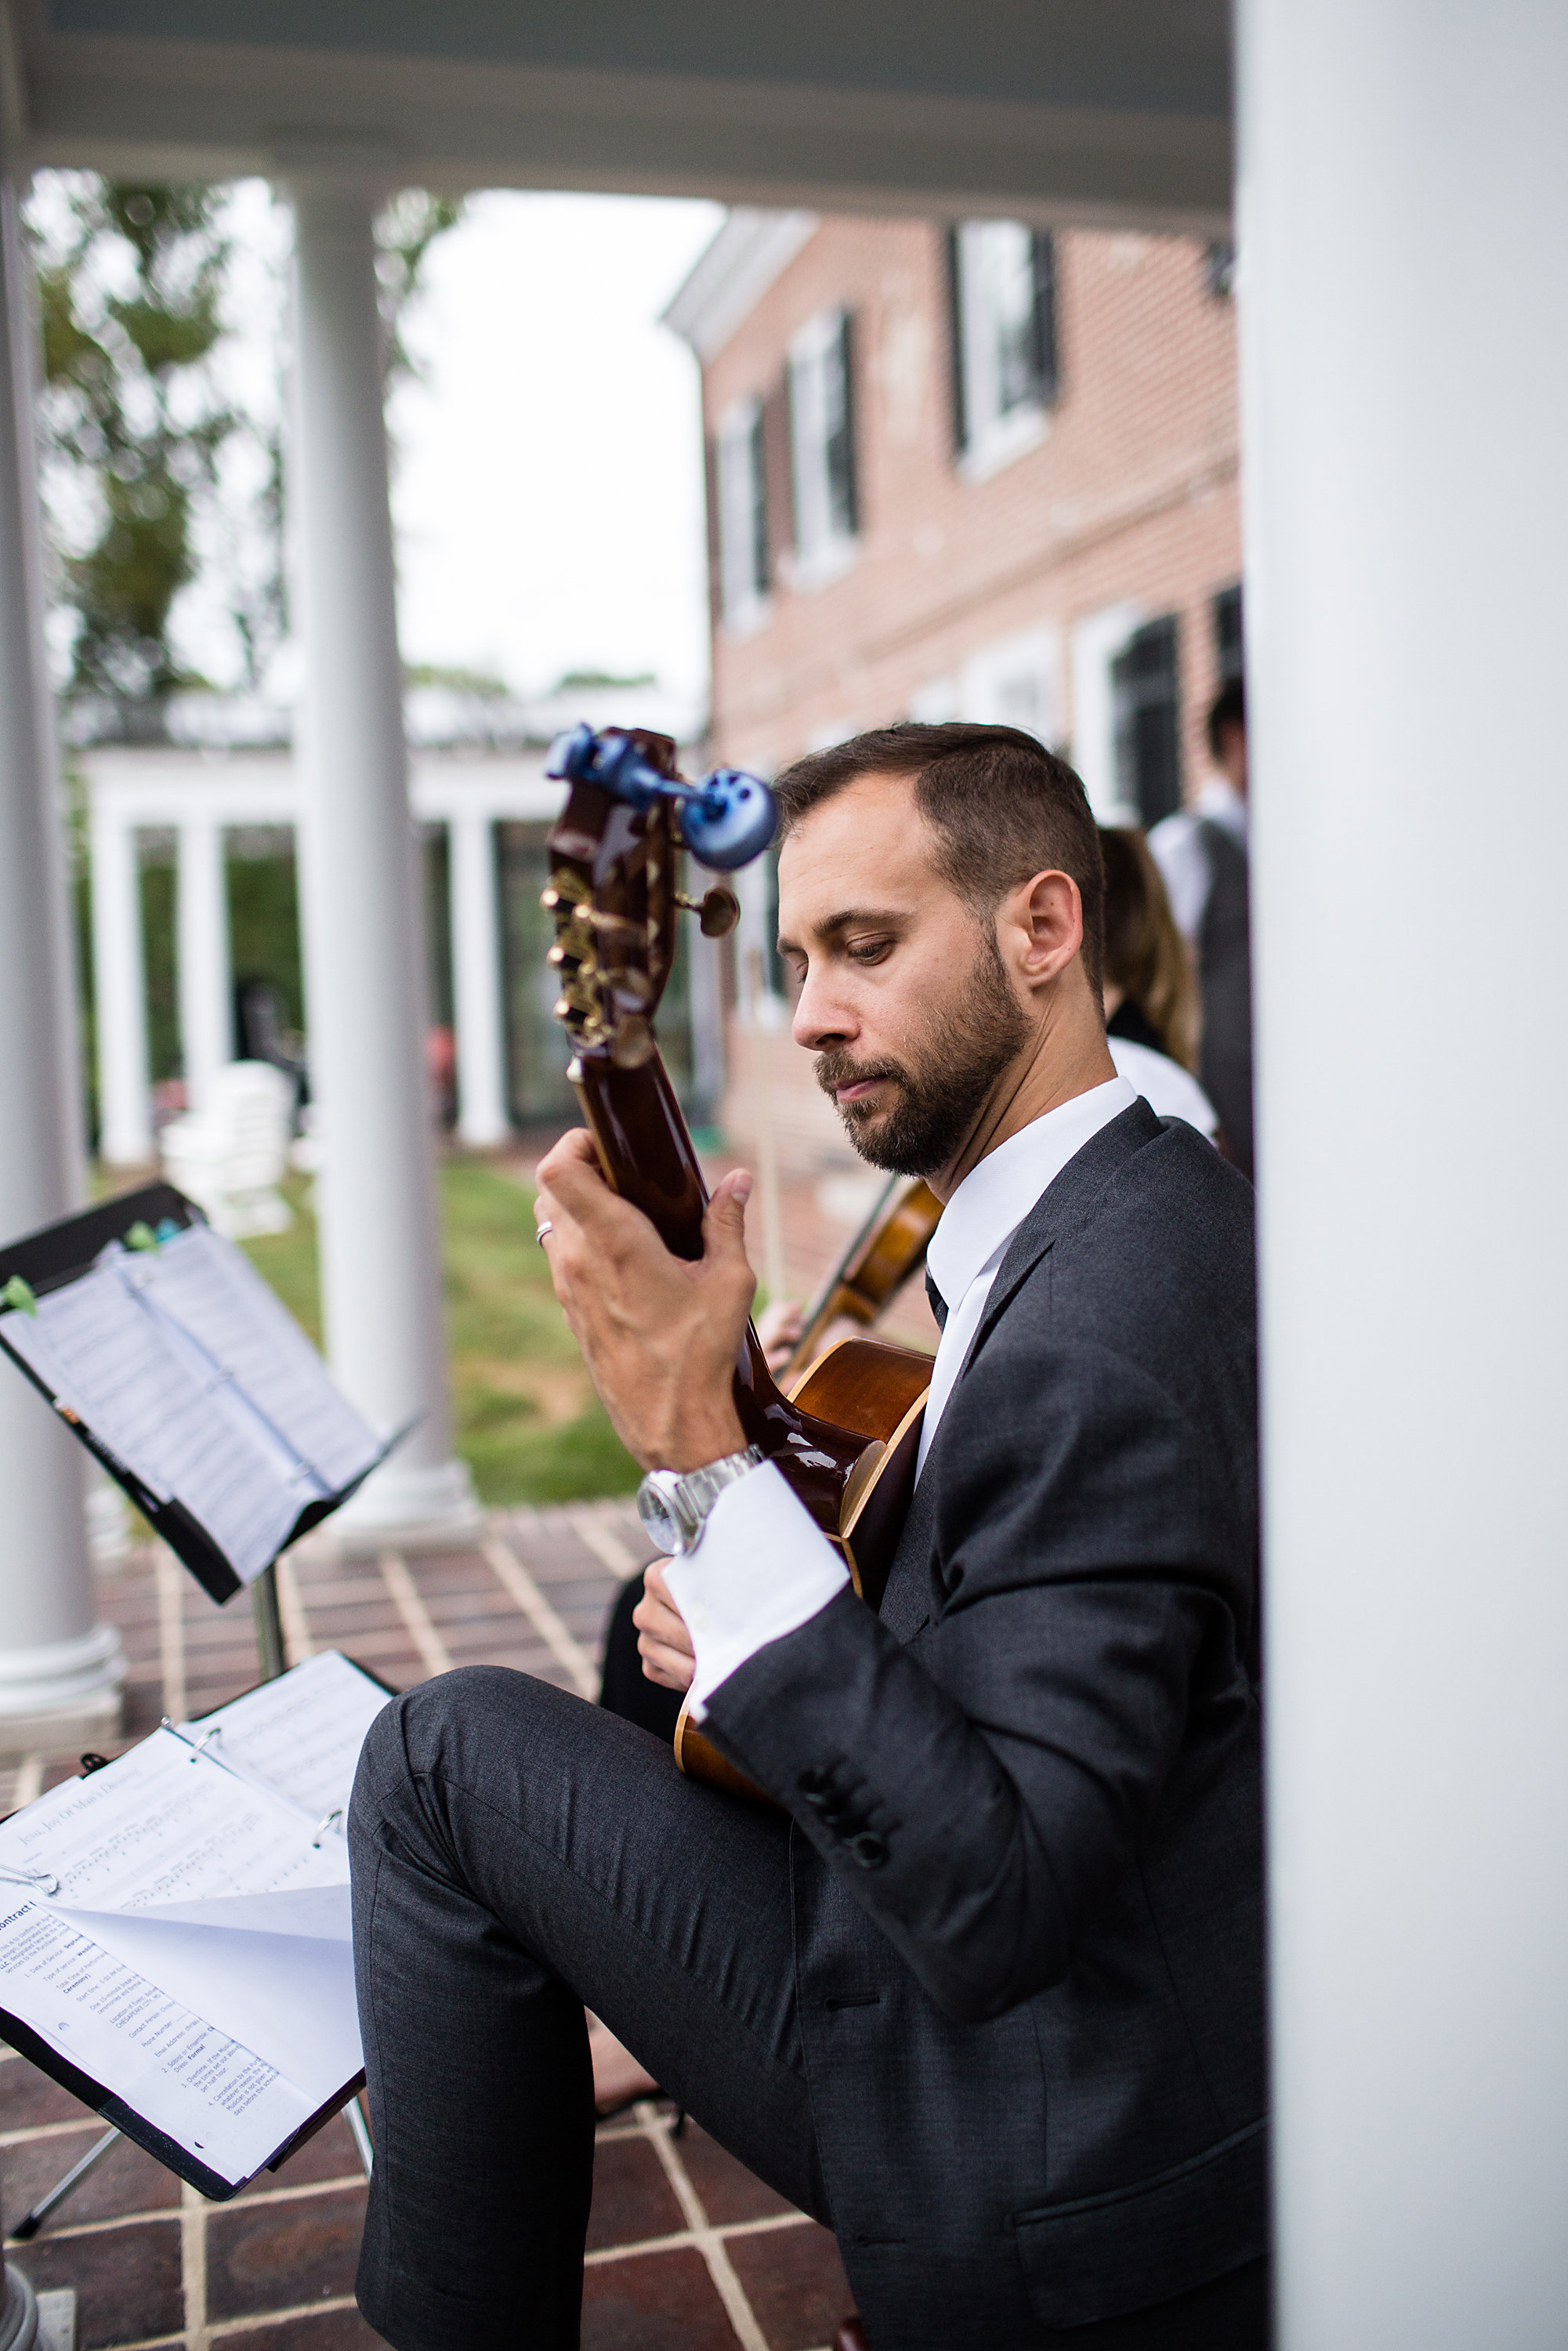 James Lowe and violinist performing at wedding in Baltimore County, Maryland.